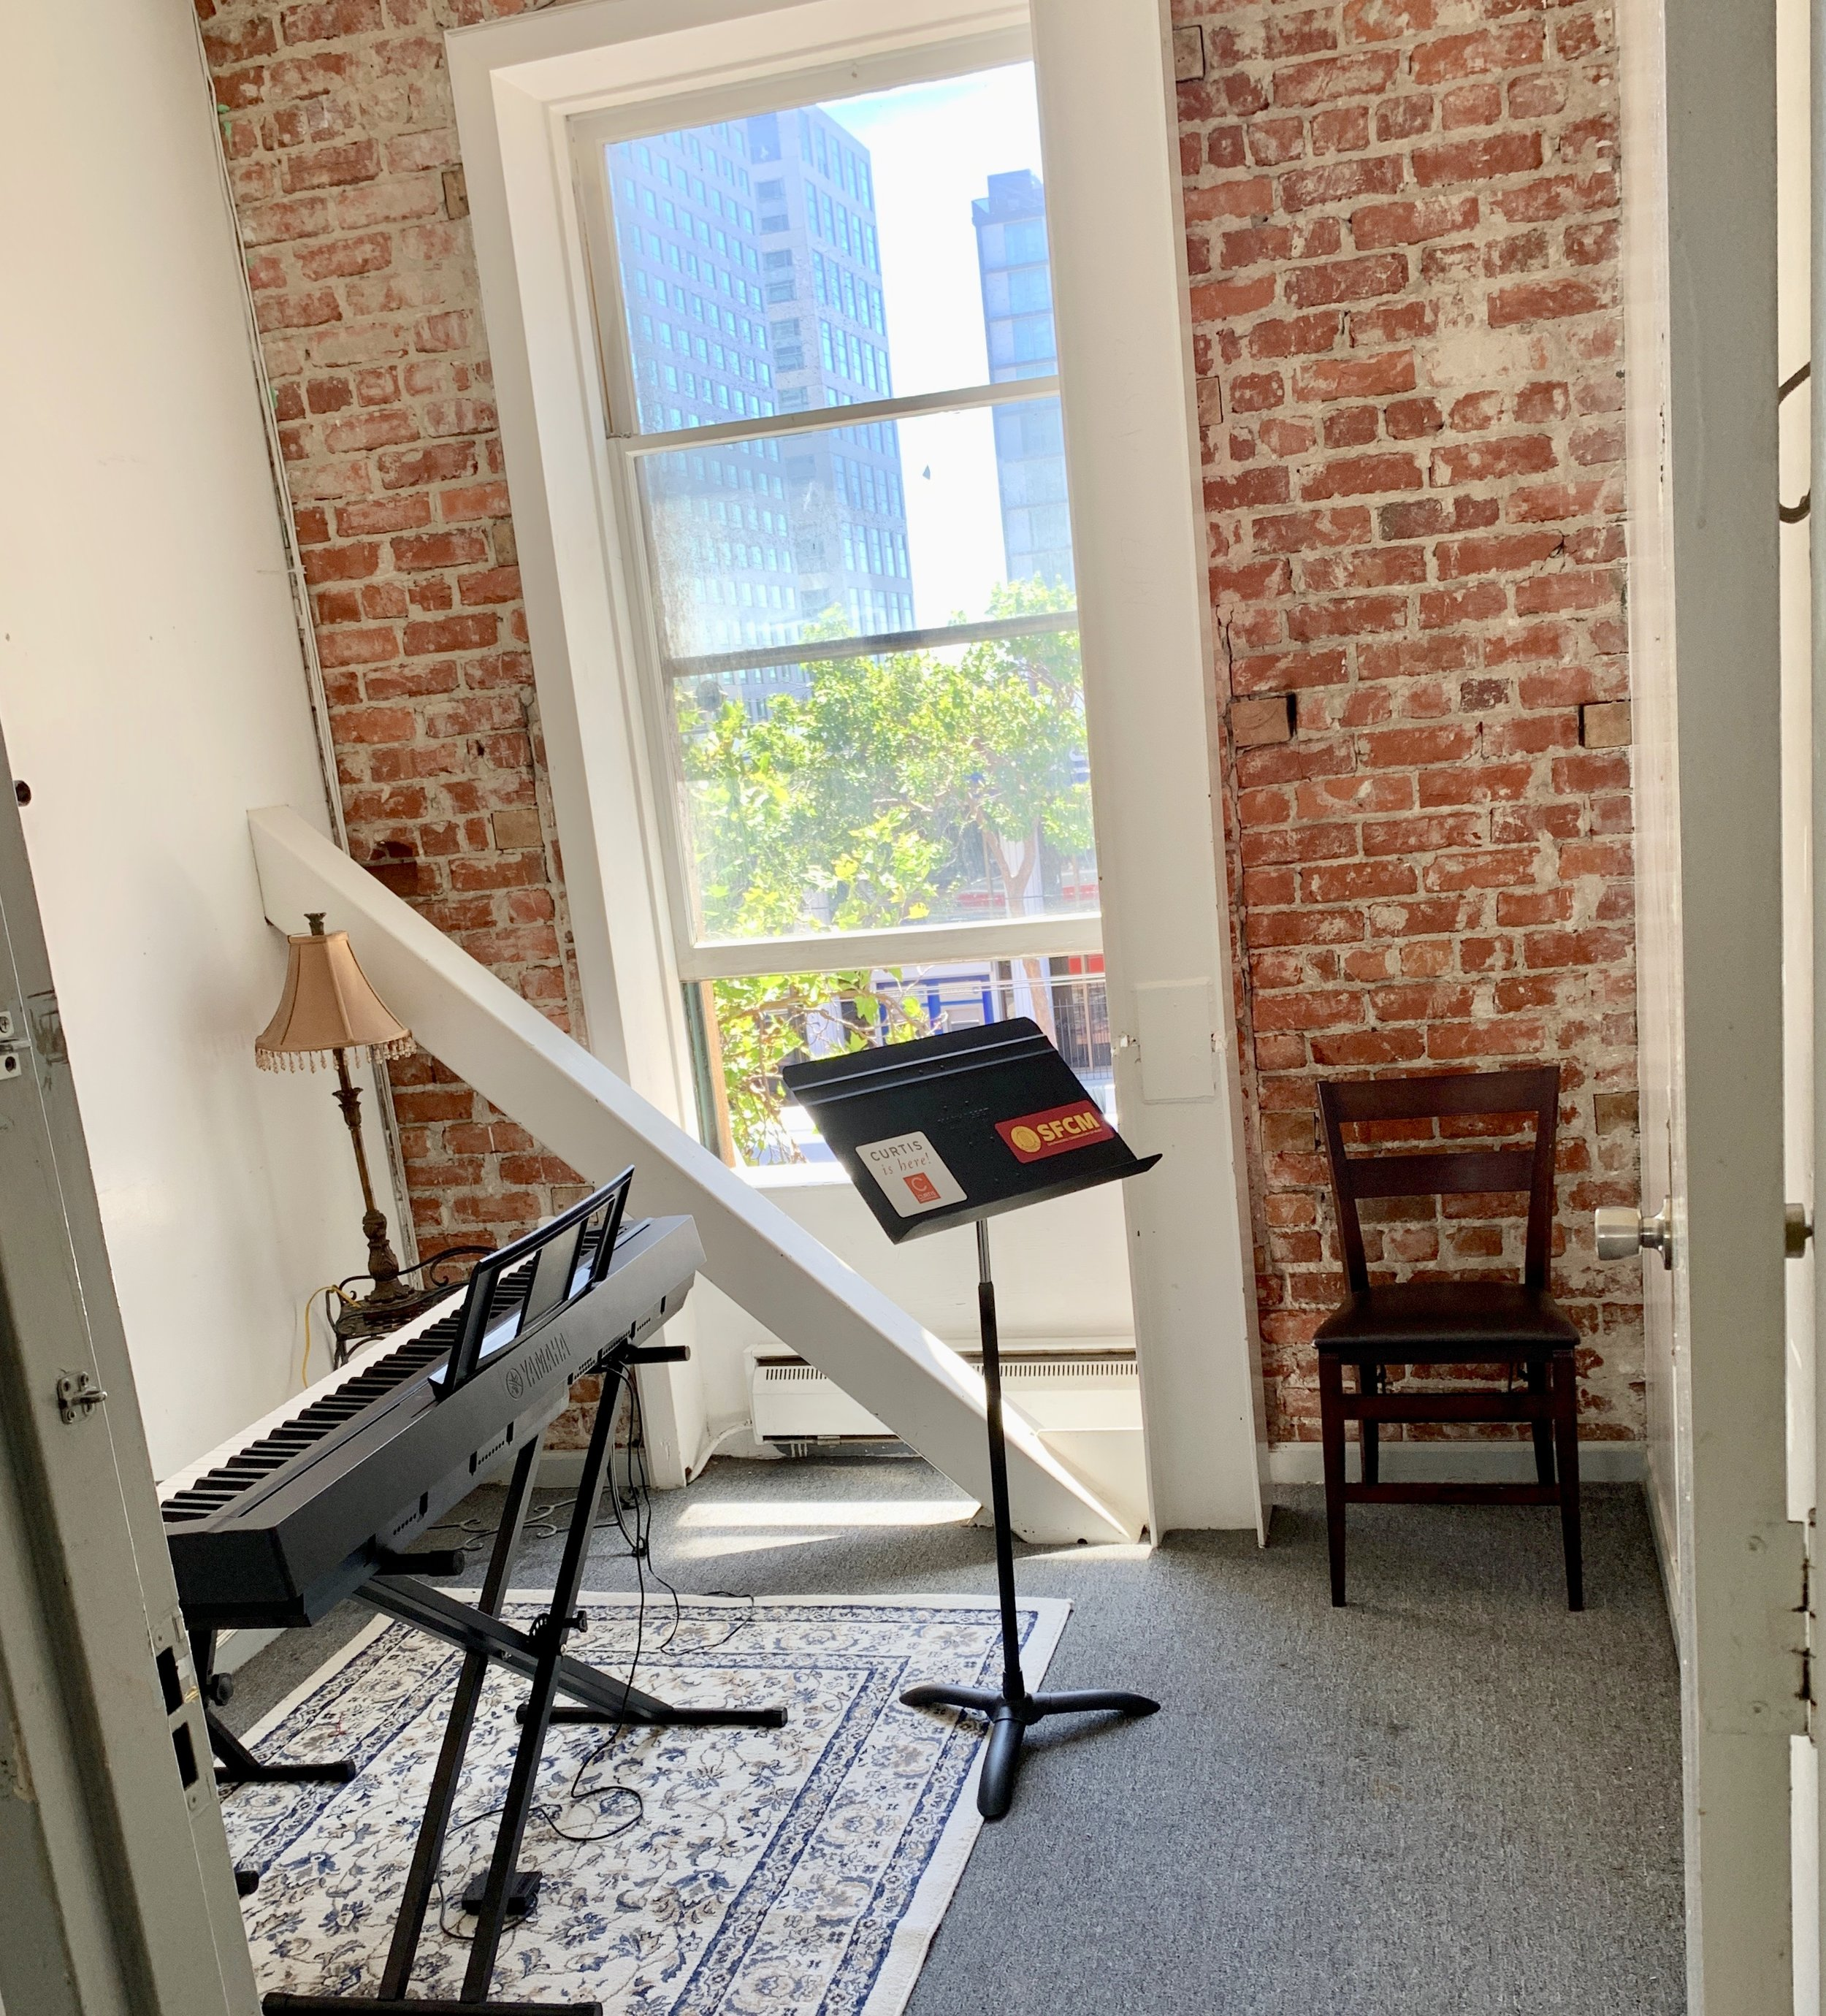 Studio 3 Uses: Lessons, practice, rehearsals for 2-3 people, meetings